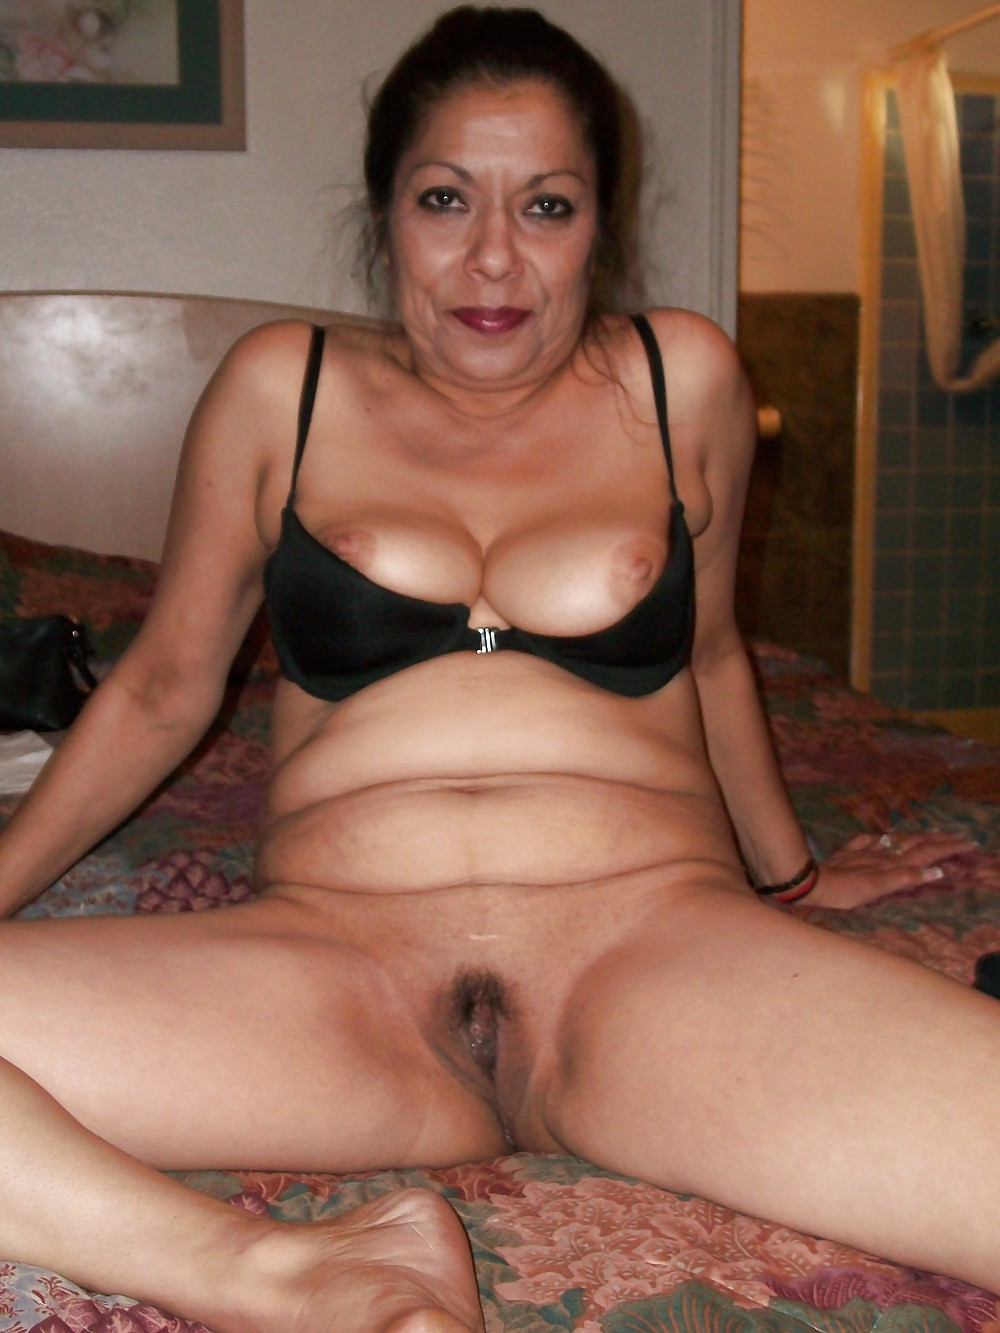 Latina mature naked, young girl fucking big dick